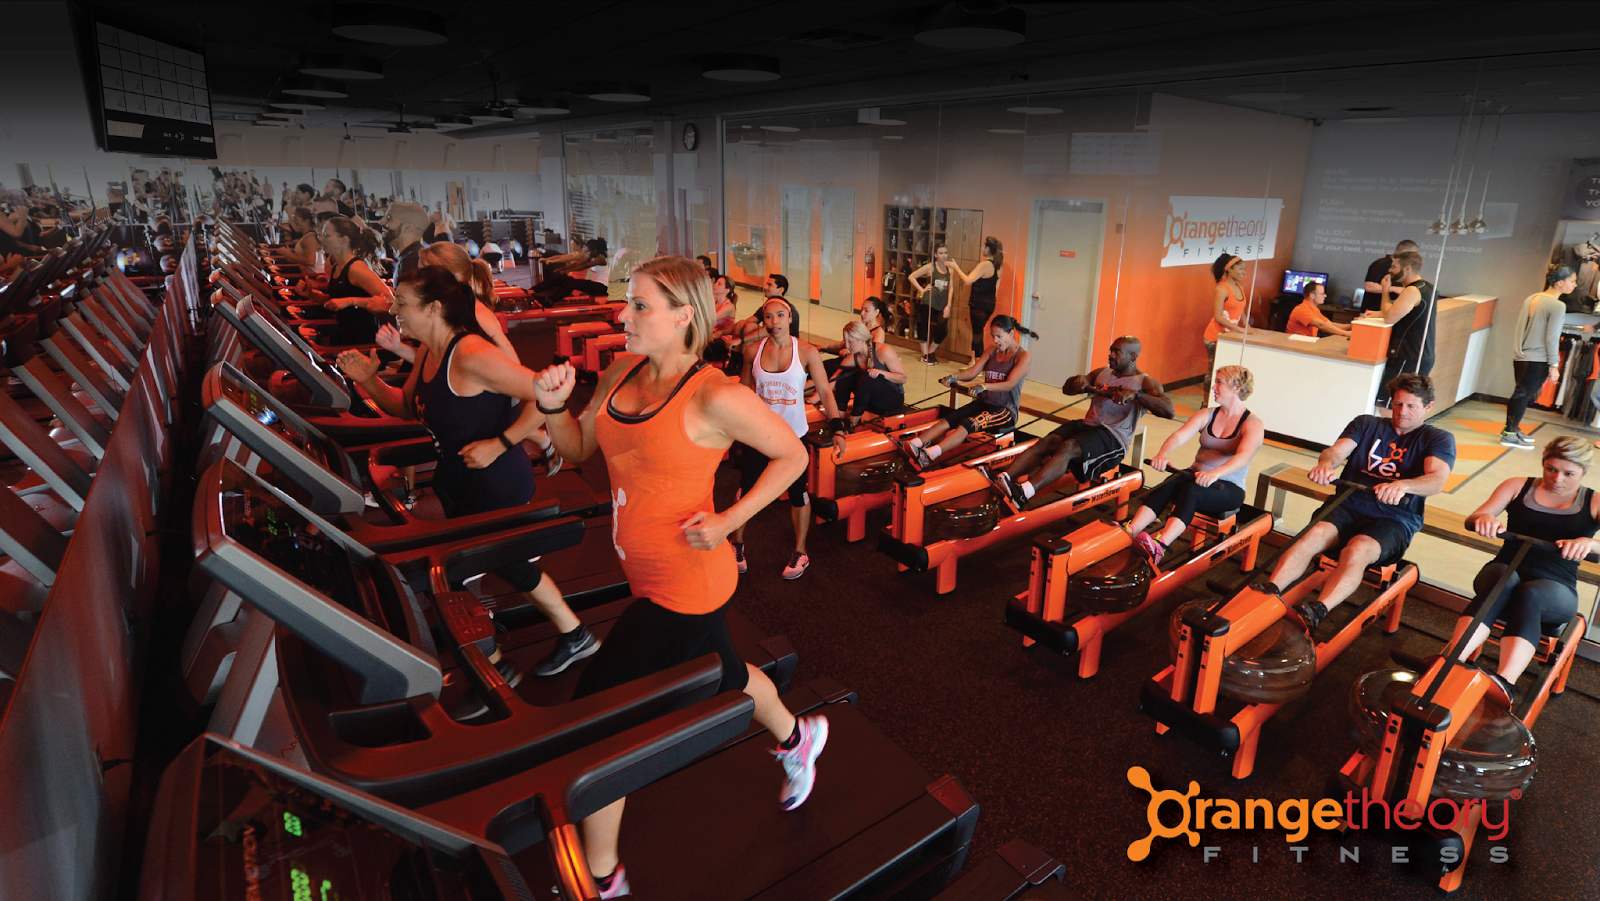 Orangetheory Fitness - photo